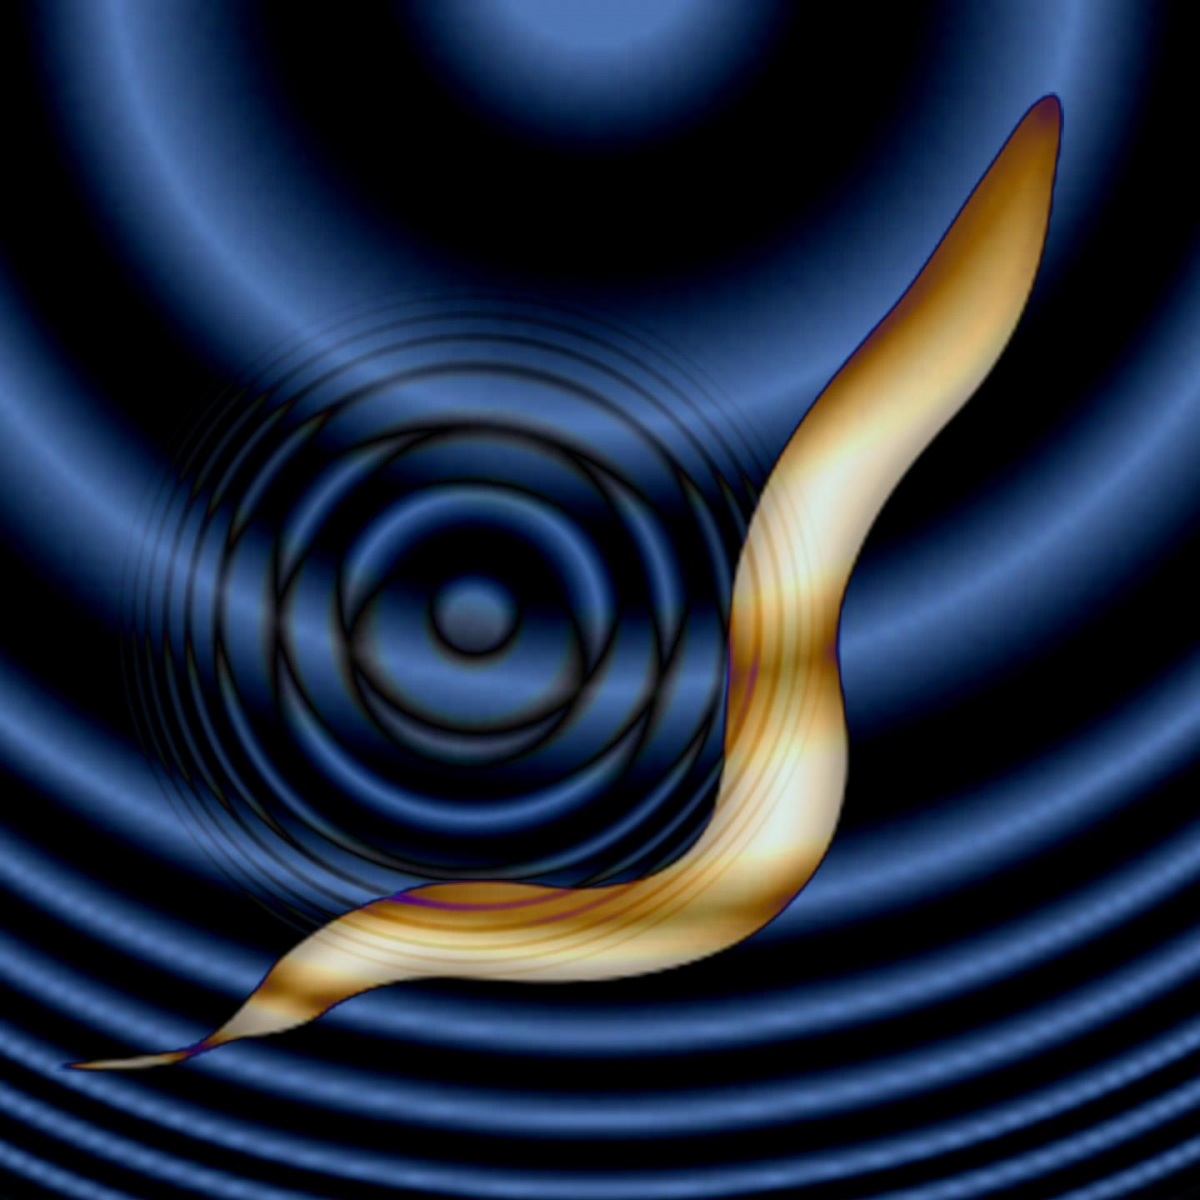 worm brains controlled sound waves